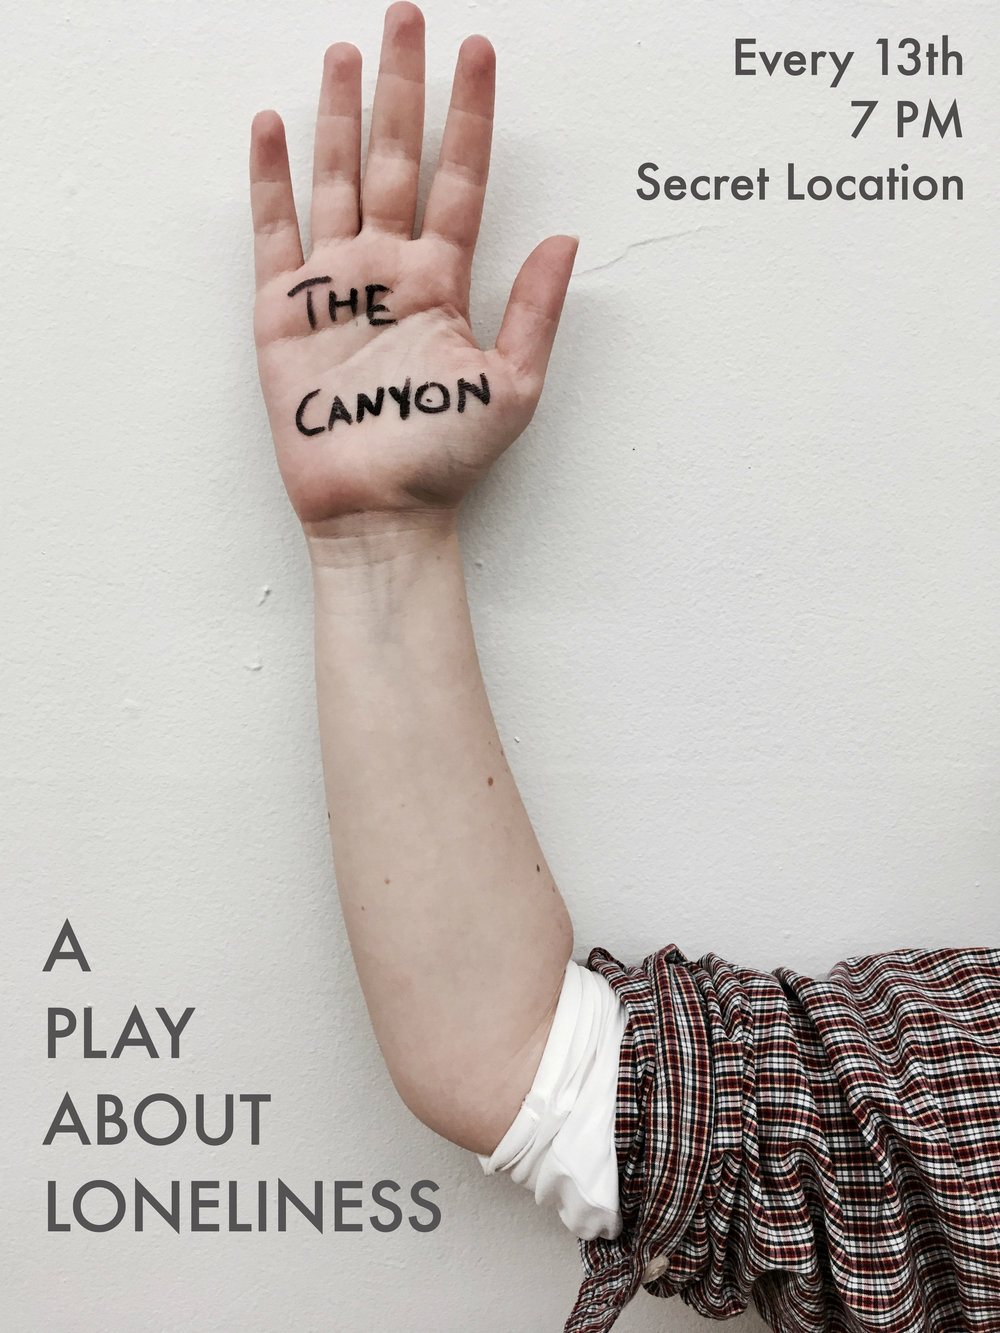 THE CANYON - Full Poster.jpg